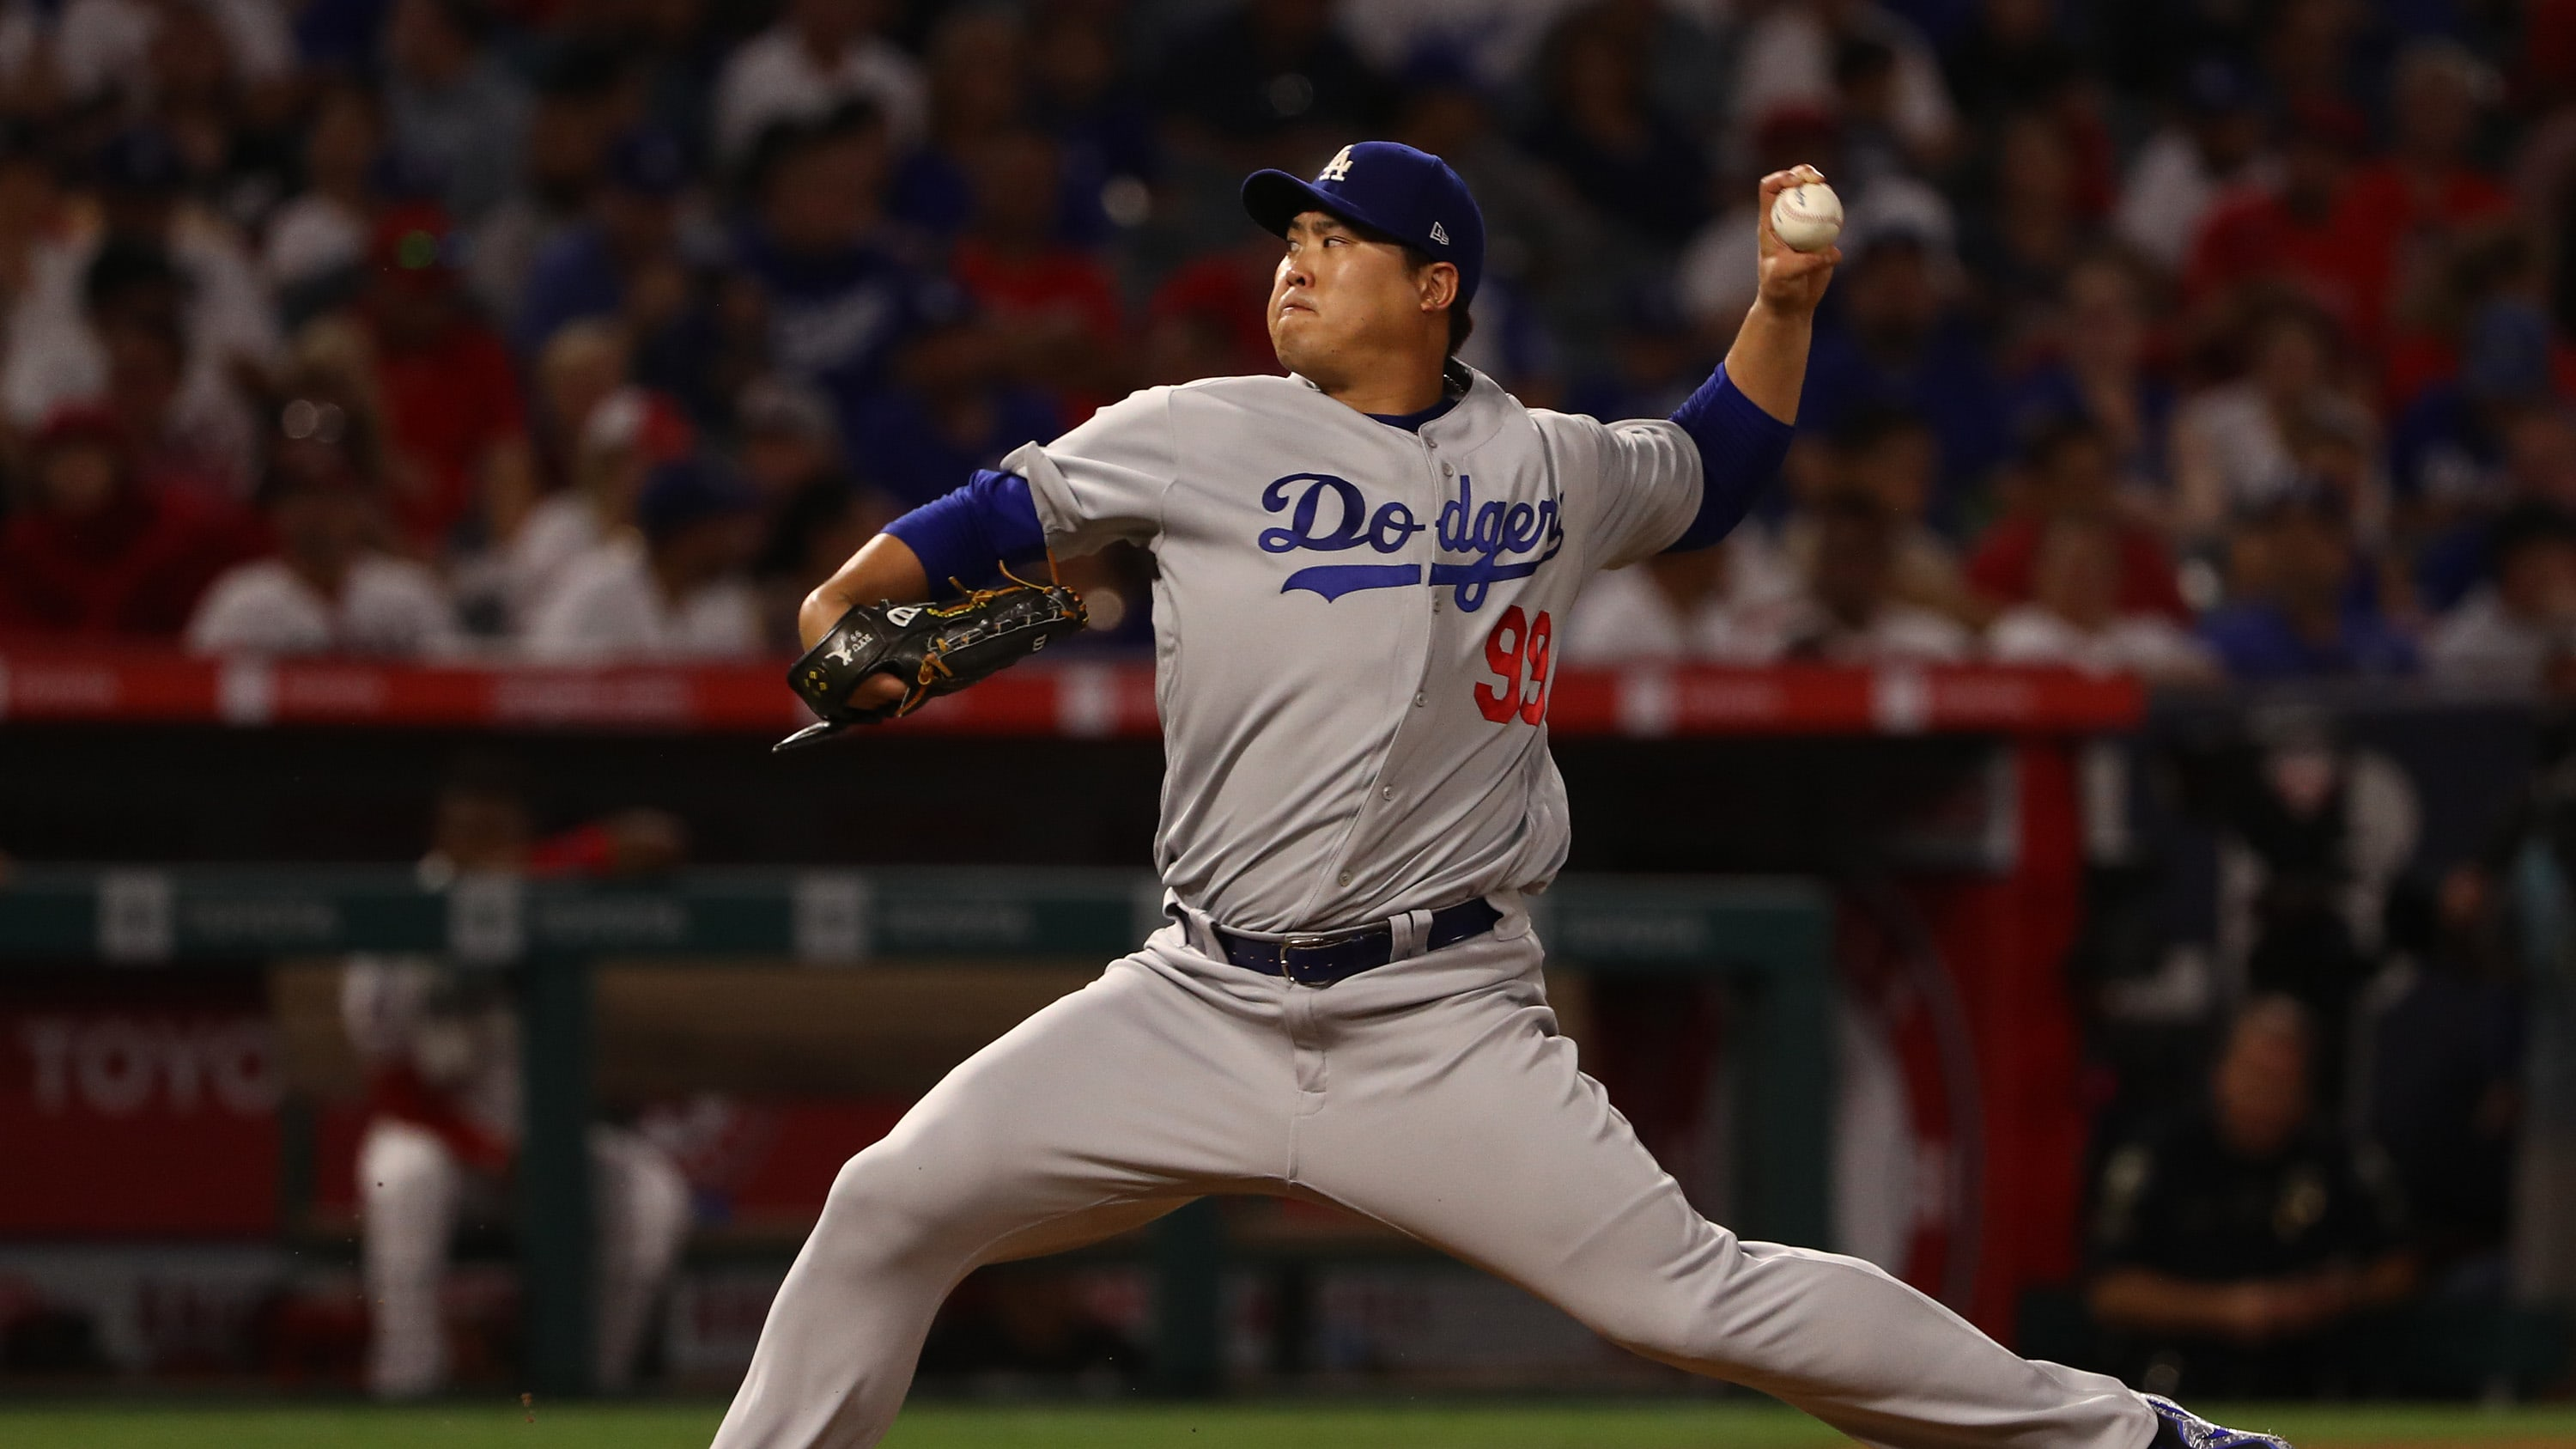 ANAHEIM, CALIFORNIA - JUNE 10: Pitcher Hyun-Jin Ryu #99 of the Los Angeles Dodgers pitches in the fourth inning of the MLB game against the Los Angeles Angels at Angel Stadium of Anaheim on June 10, 2019 in Anaheim, California. (Photo by Victor Decolongon/Getty Images)